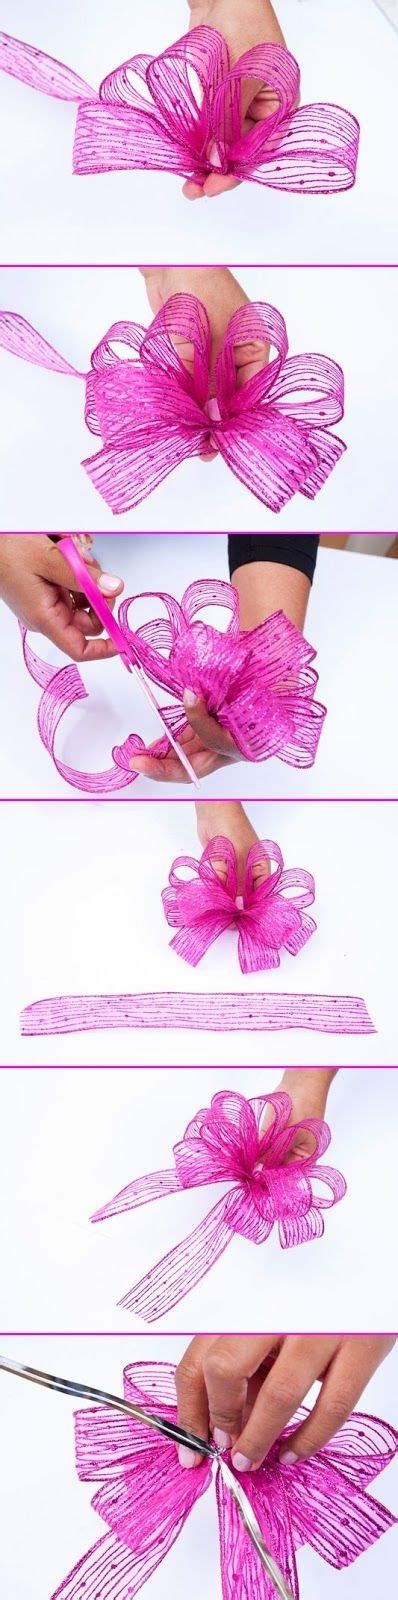 learn how to make this pretty bow for your gifts this year